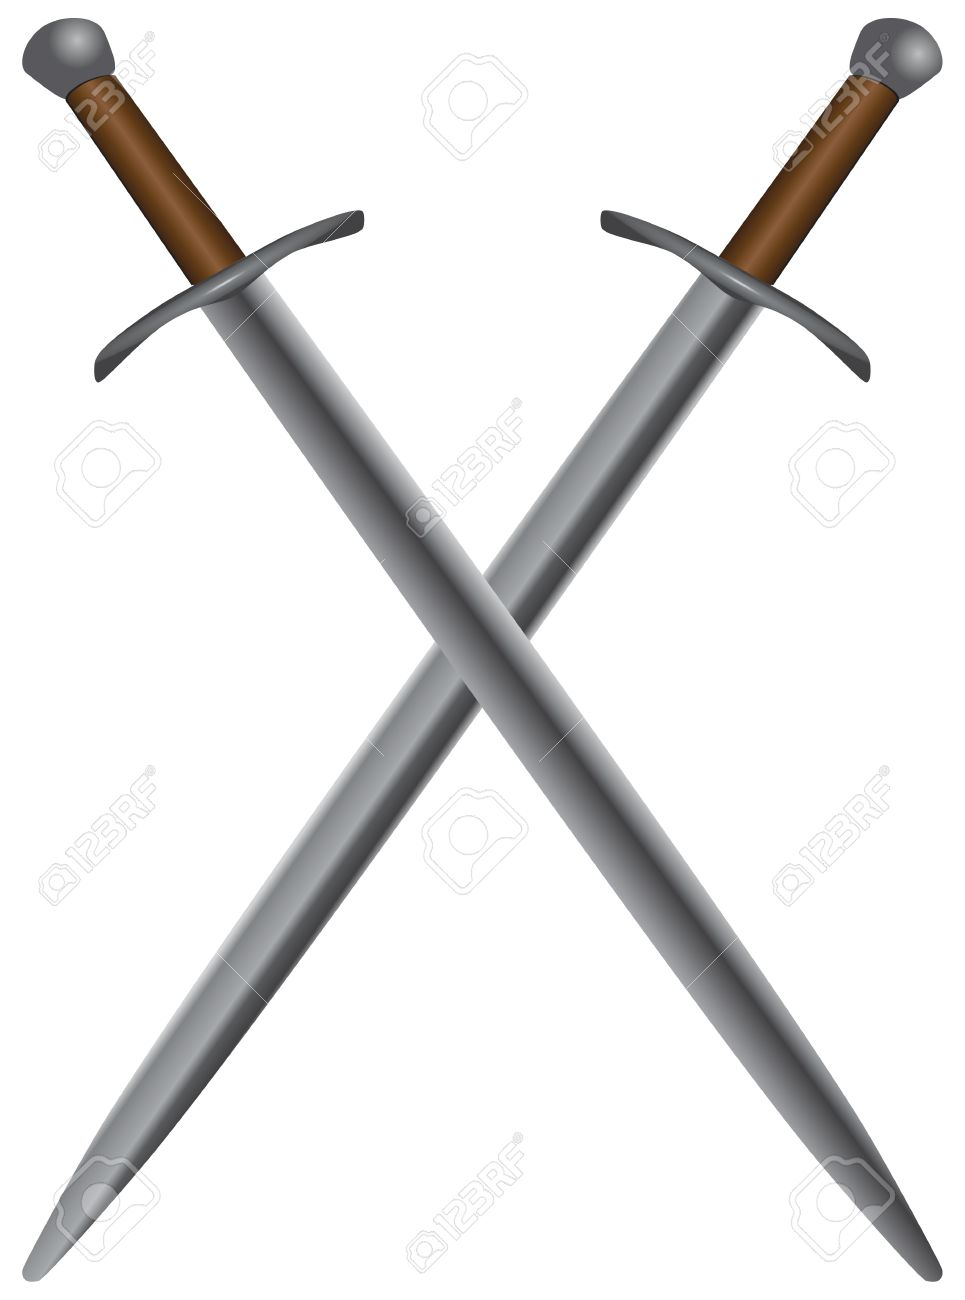 A set of double-edged swords medieval. Vector illustration. Stock Vector - 17223770